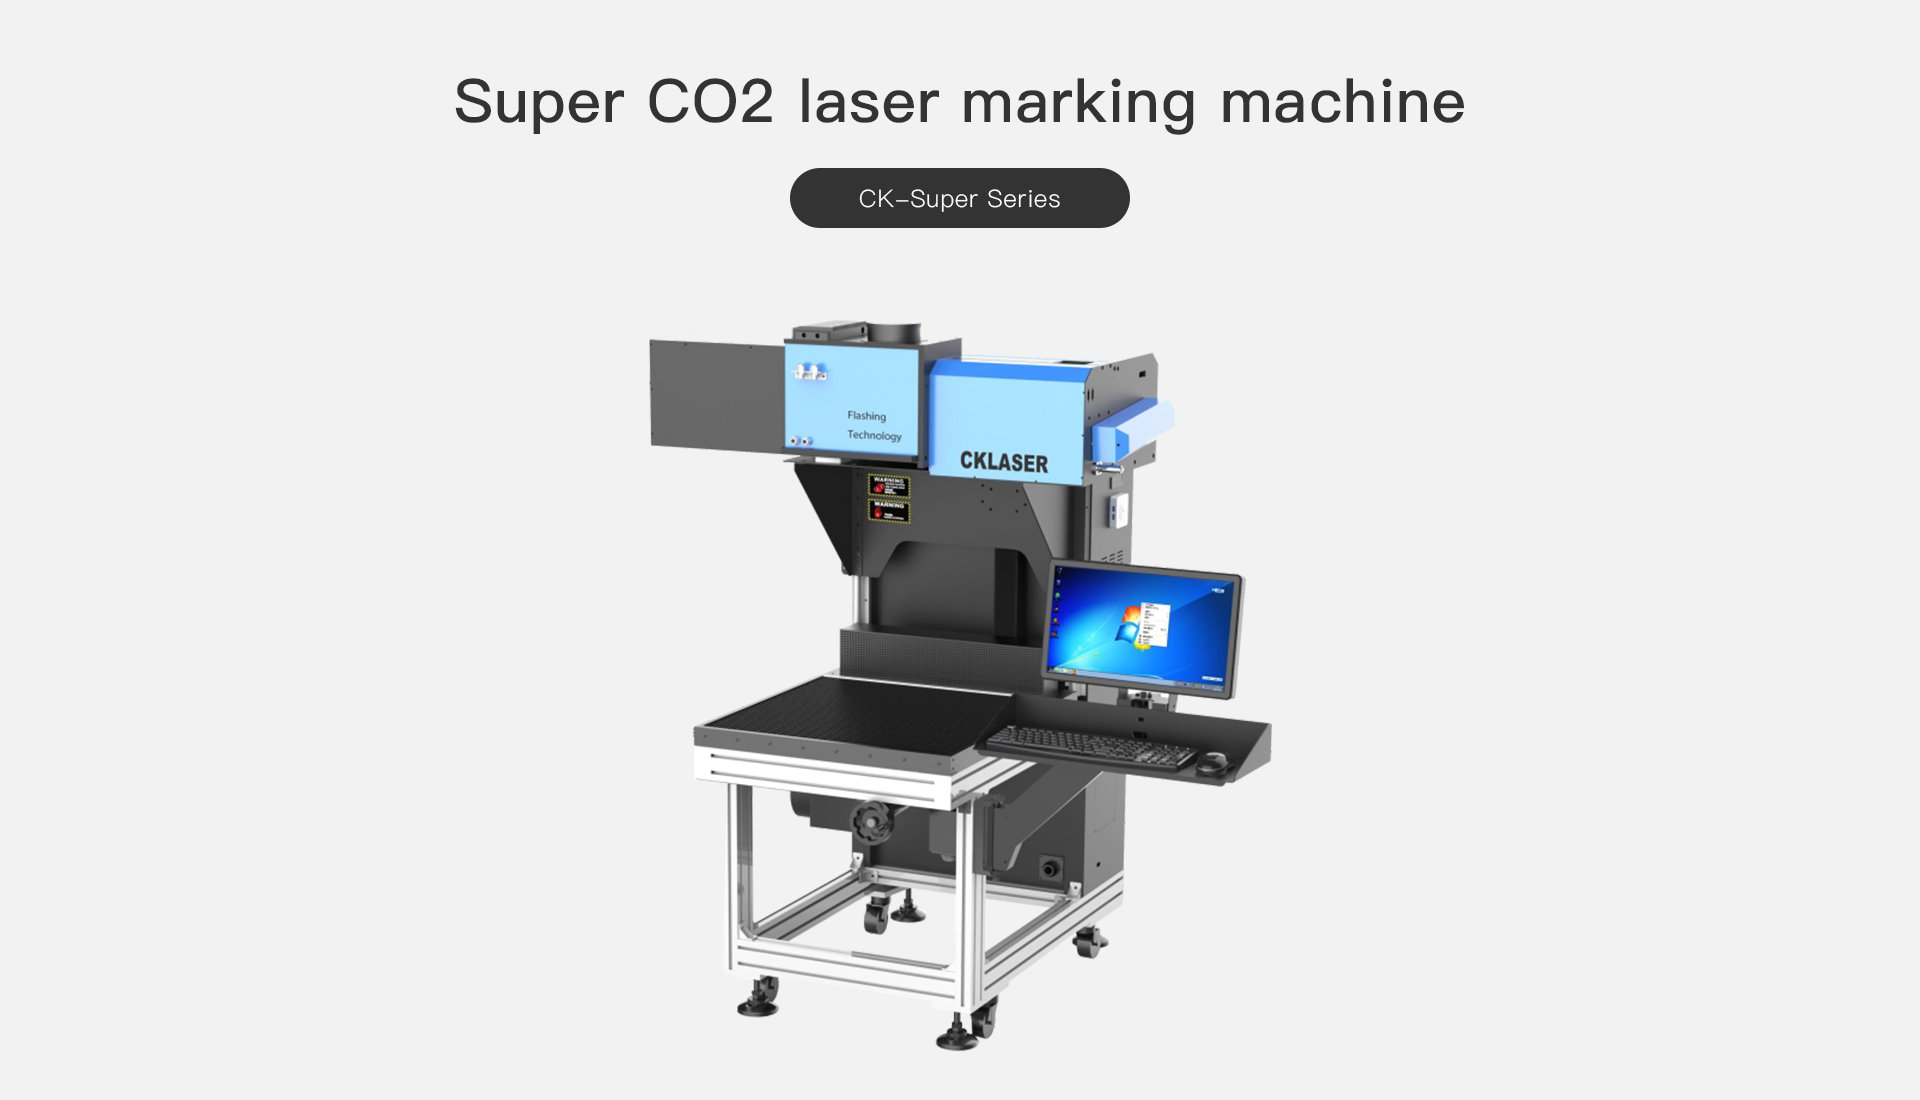 Taste Laser-co2 laser machine